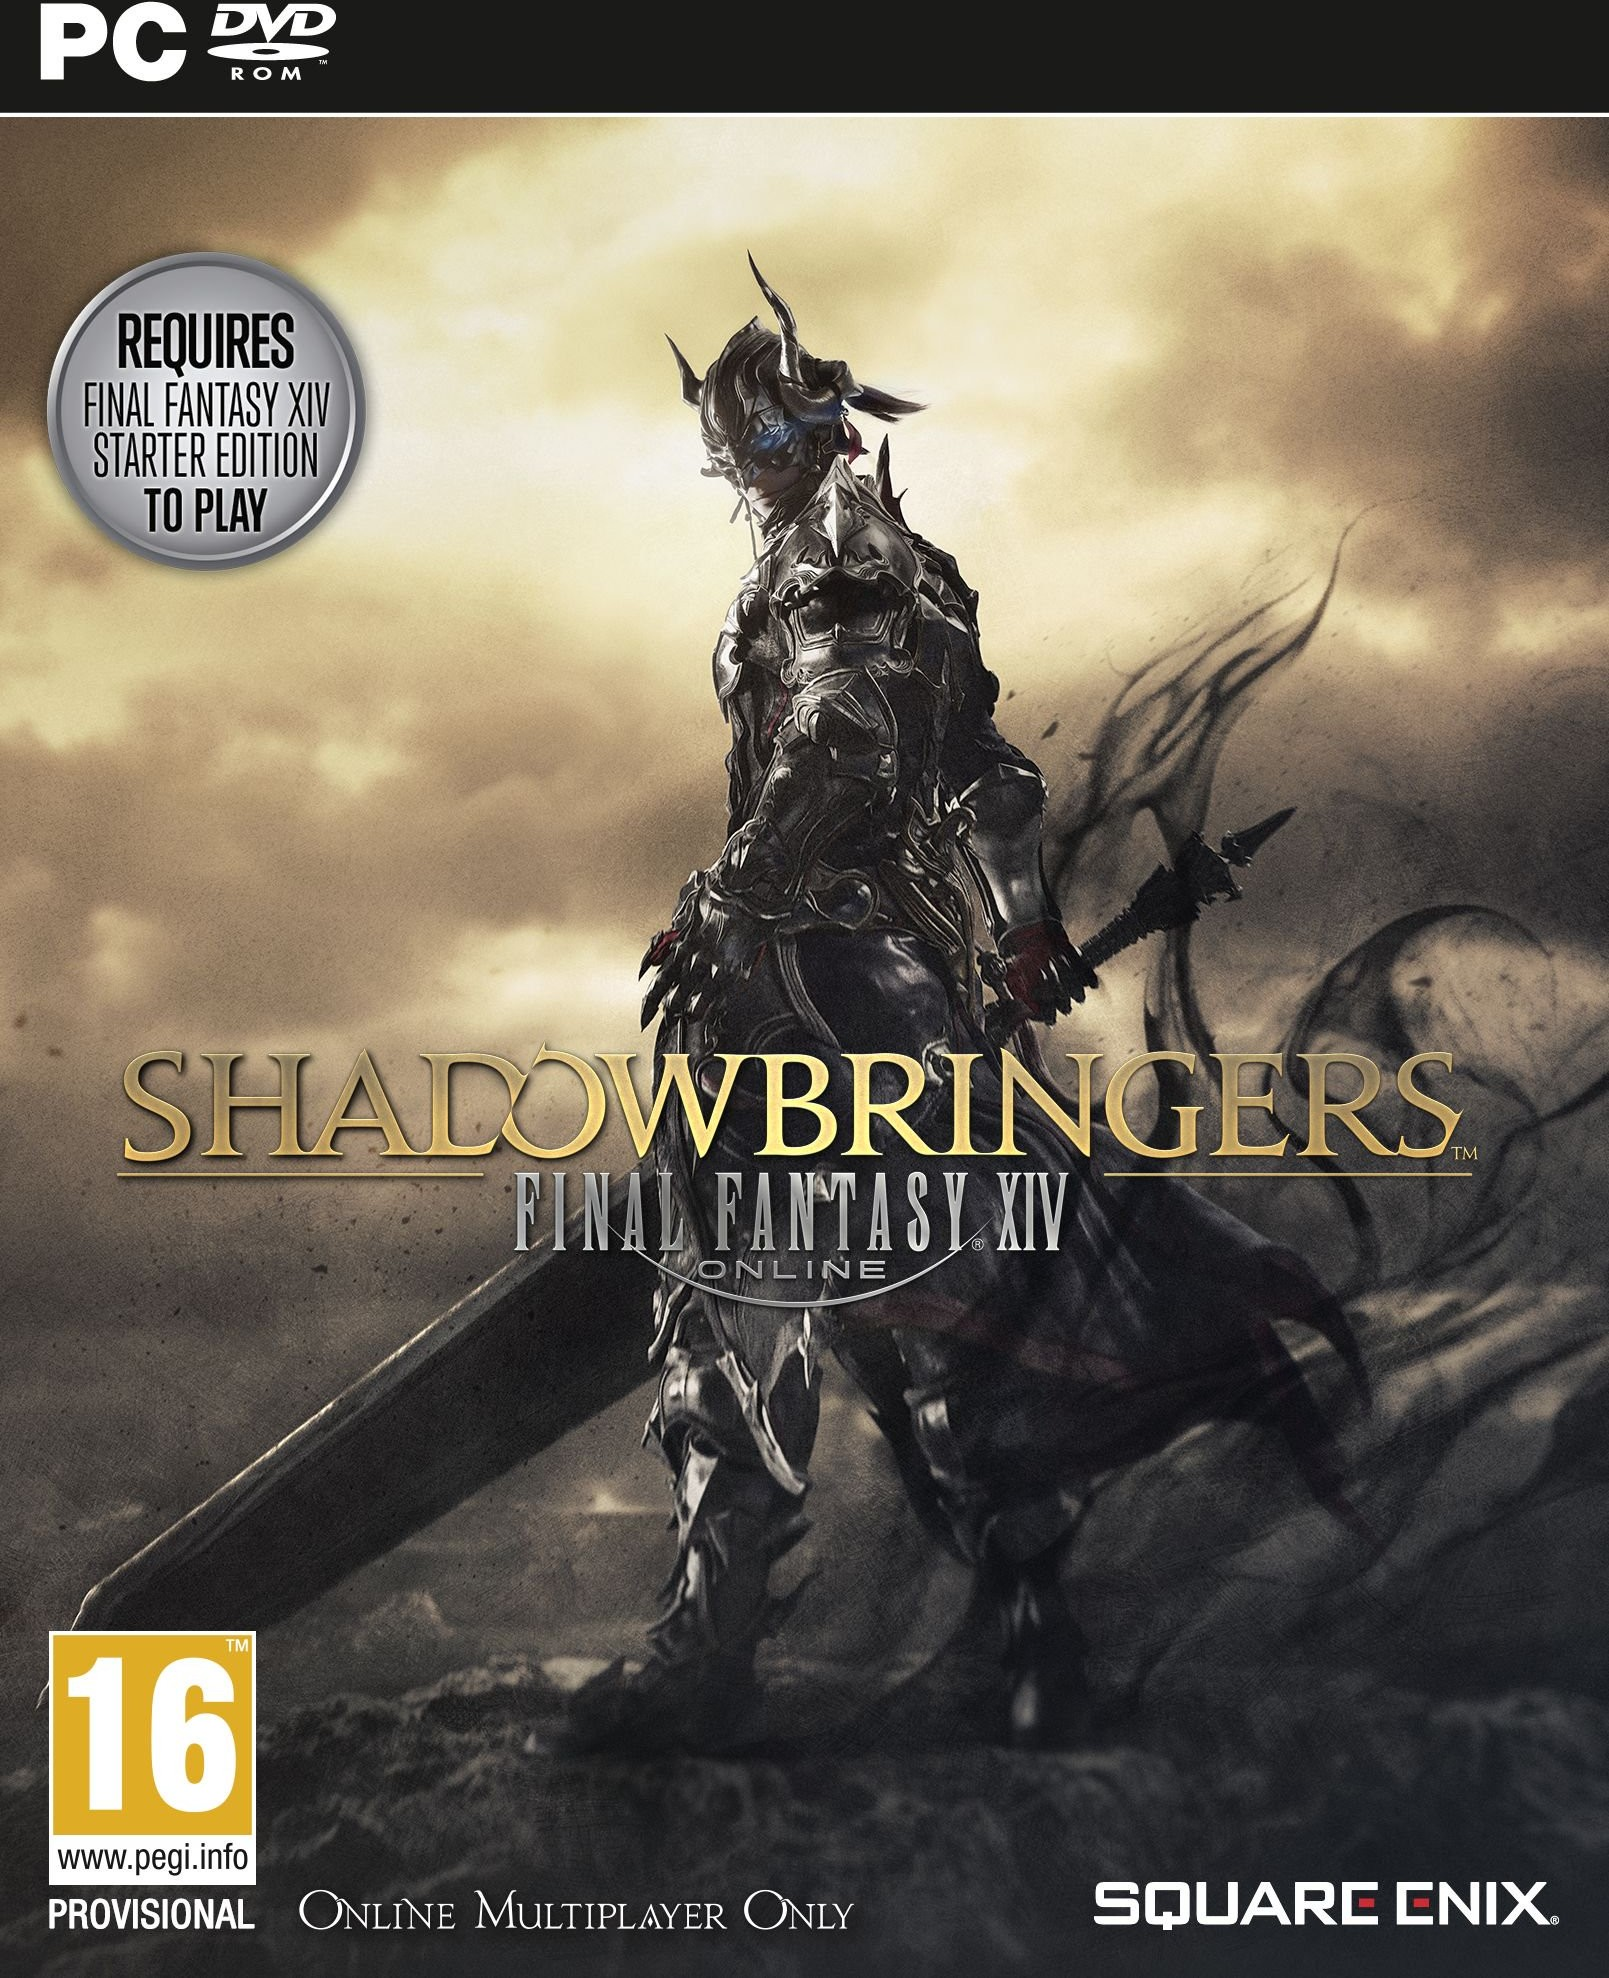 Final Fantasy XIV Shadowbringers PC